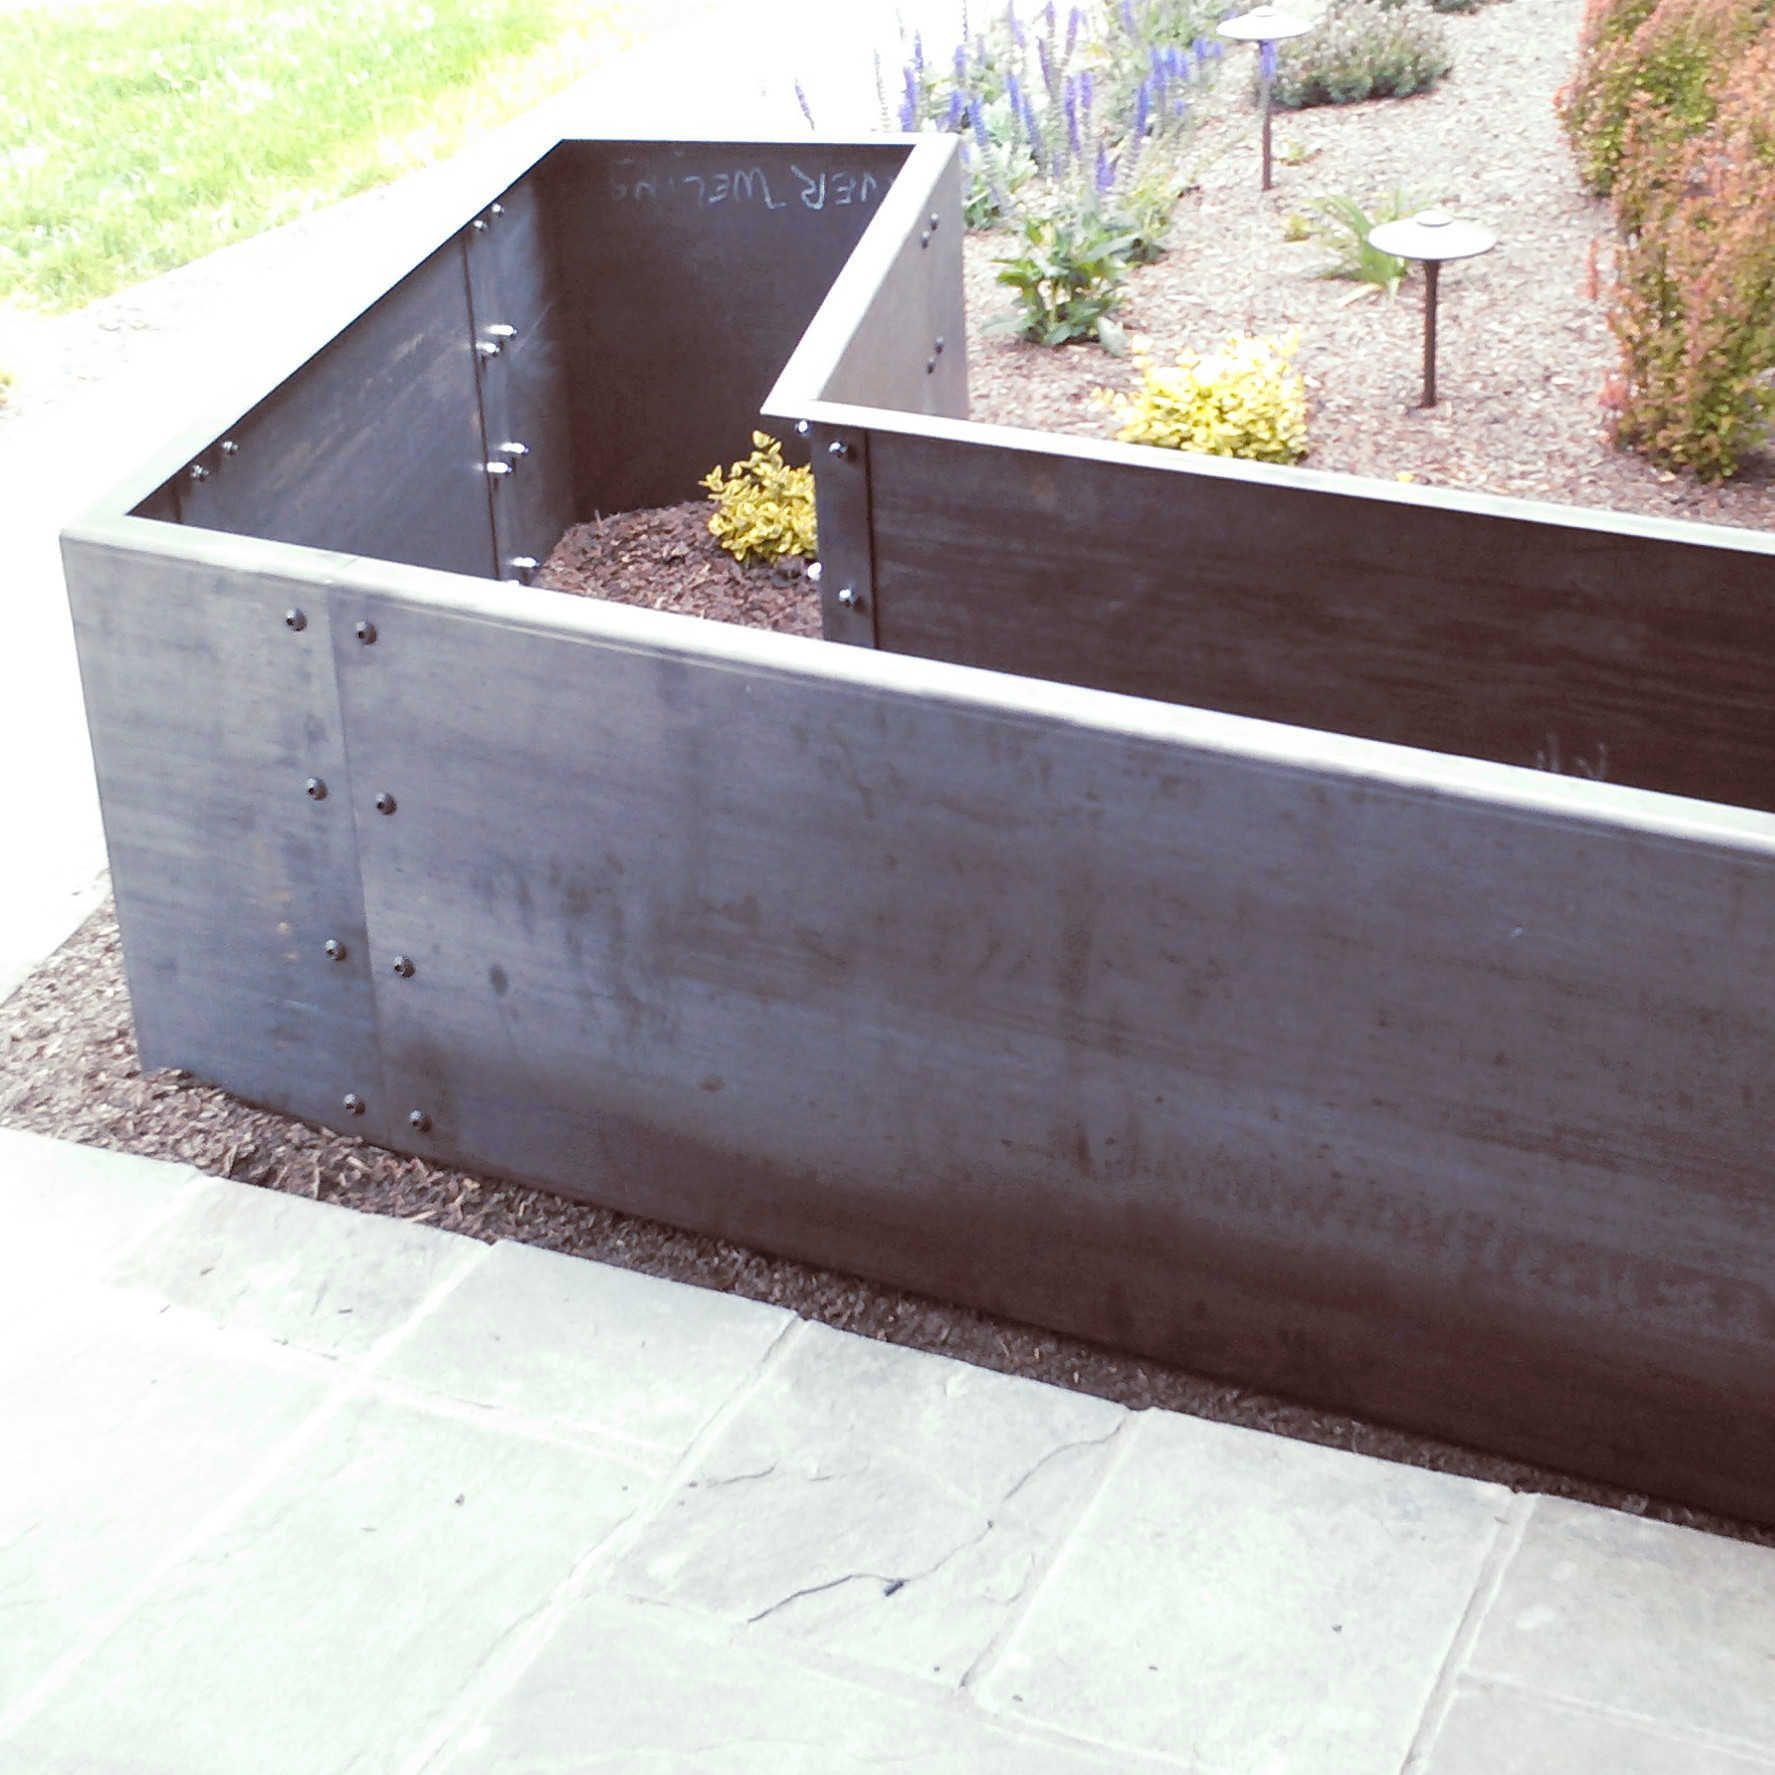 gutter planter i time love one img events that junk boxes rain more